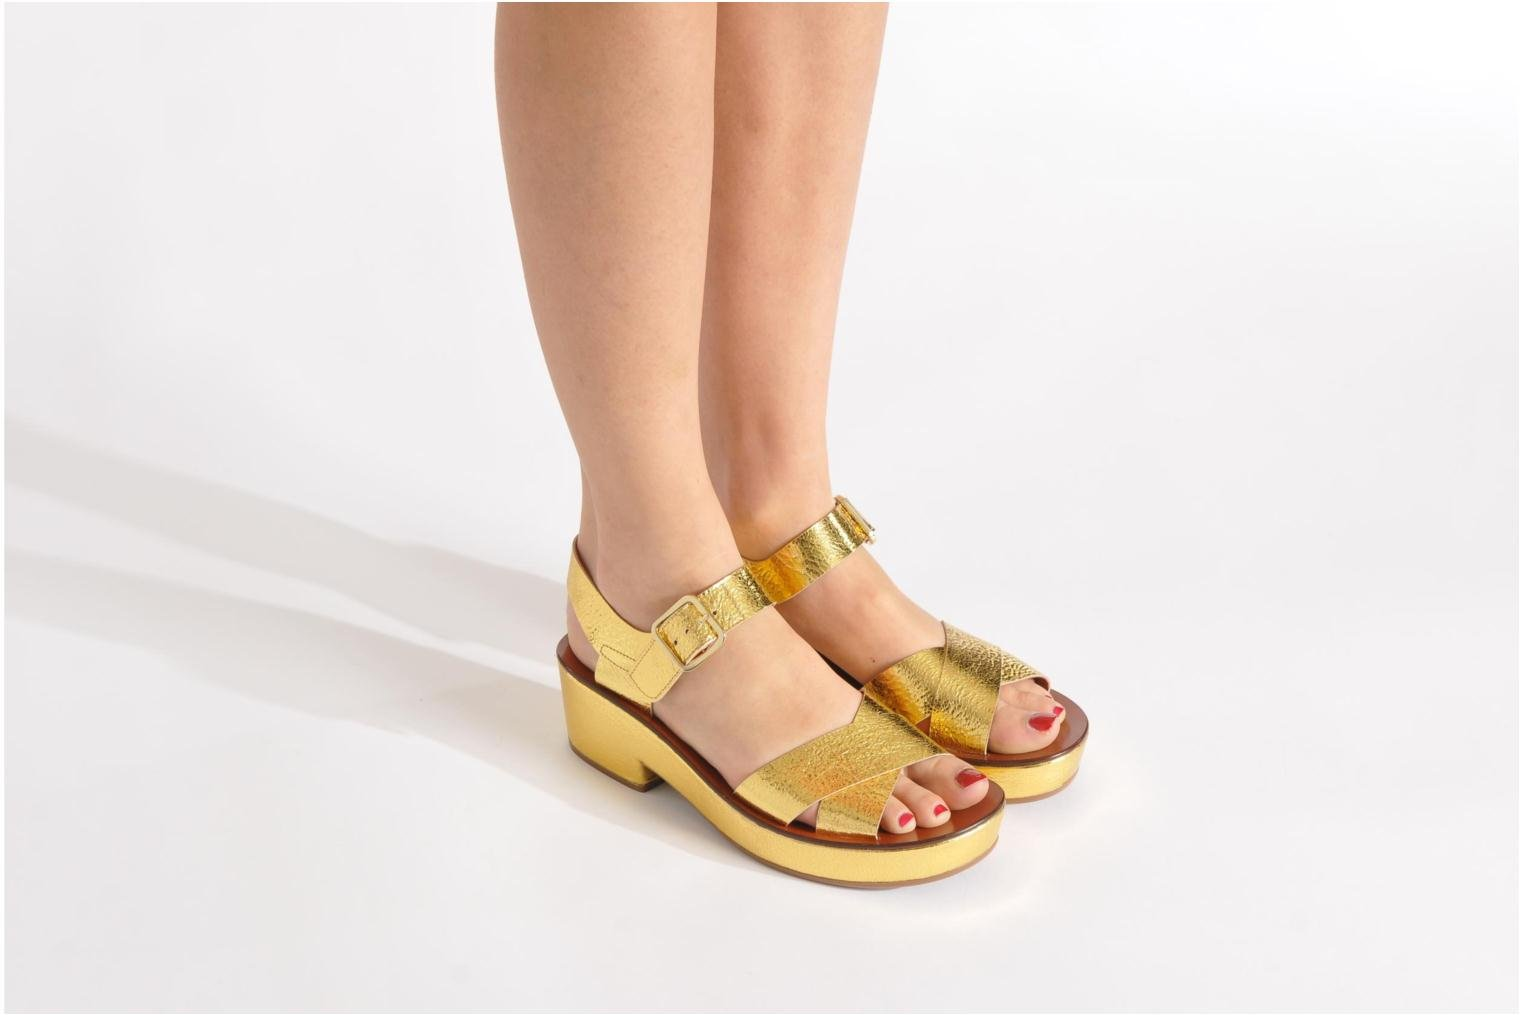 Chie Mihara Ocra Sandals In Bronze And Gold At Sarenza Co